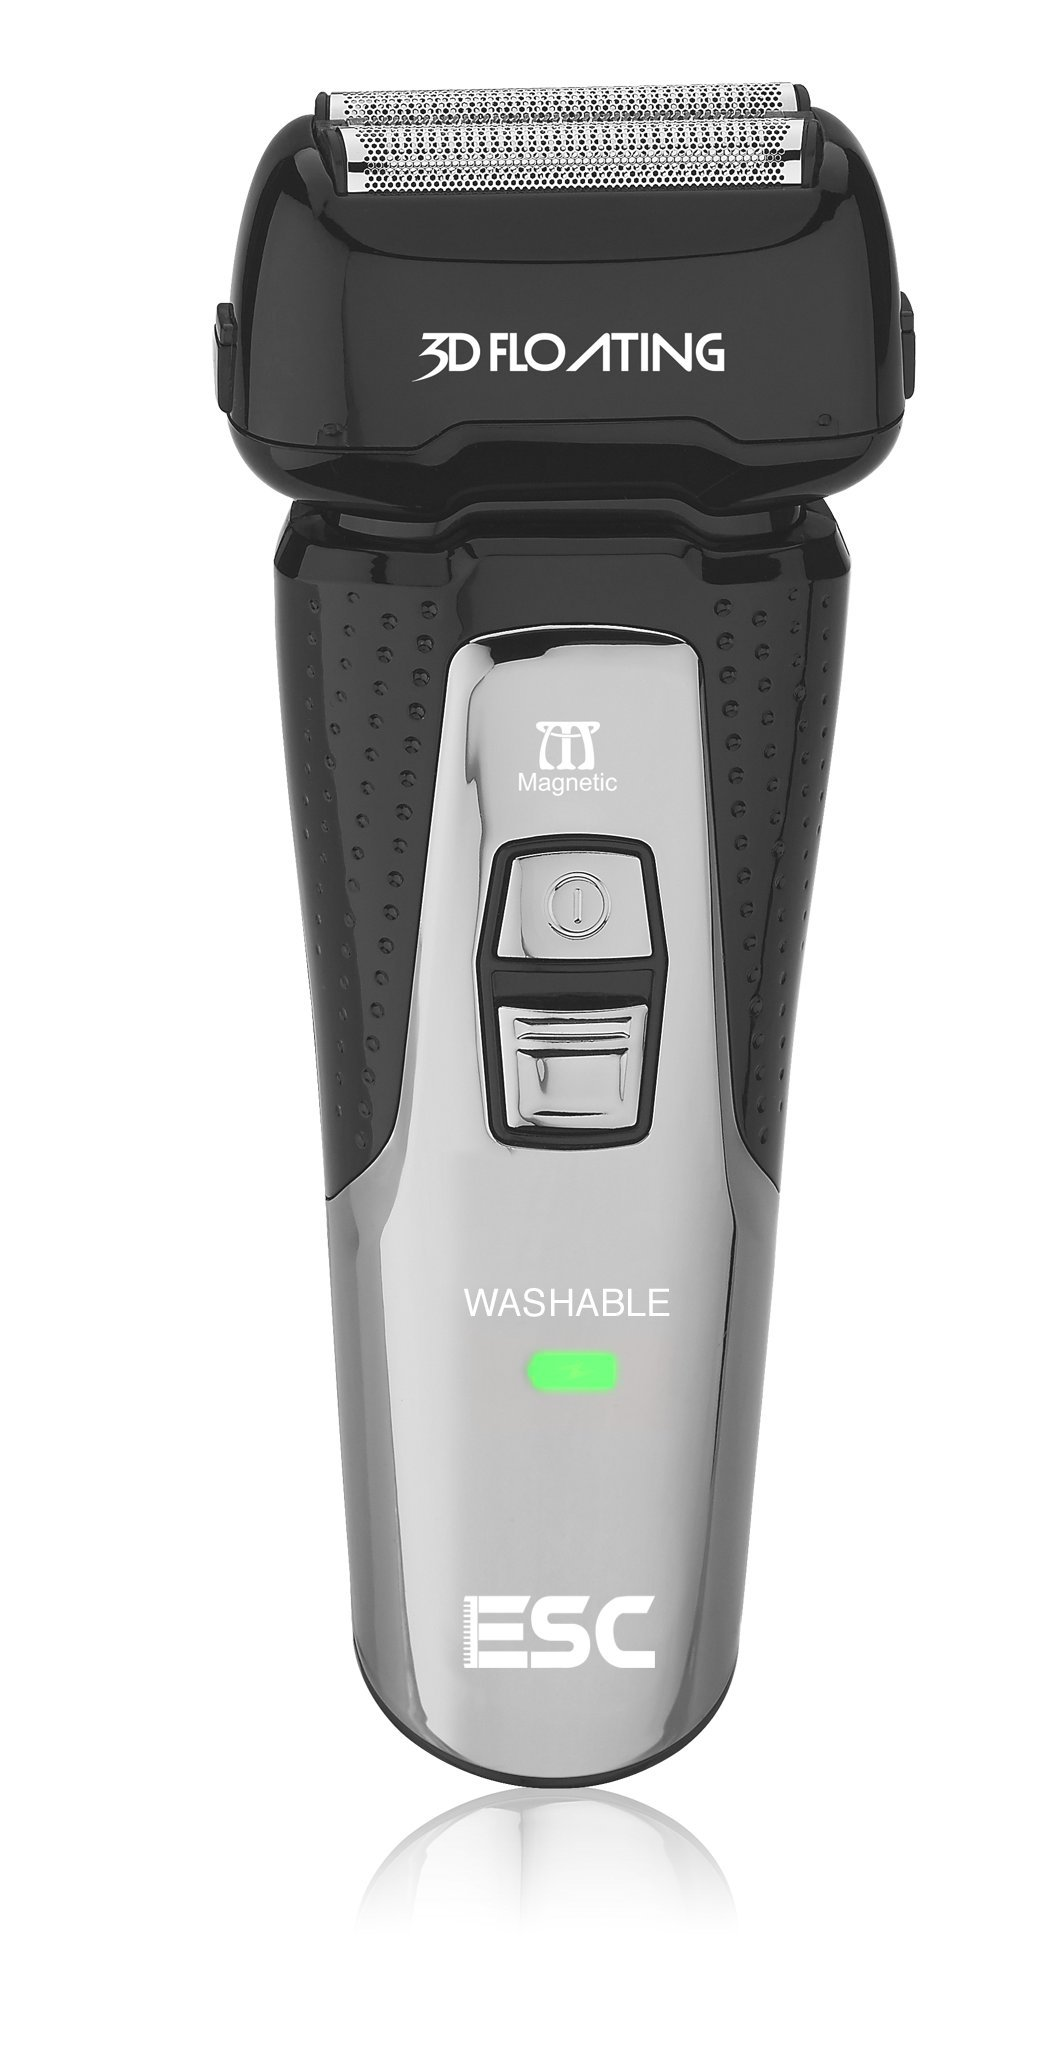 ESC-100 Wet and Dry Electric Razor for men, Cordless and Rechargeable Shaver. By Electric Shave Club.